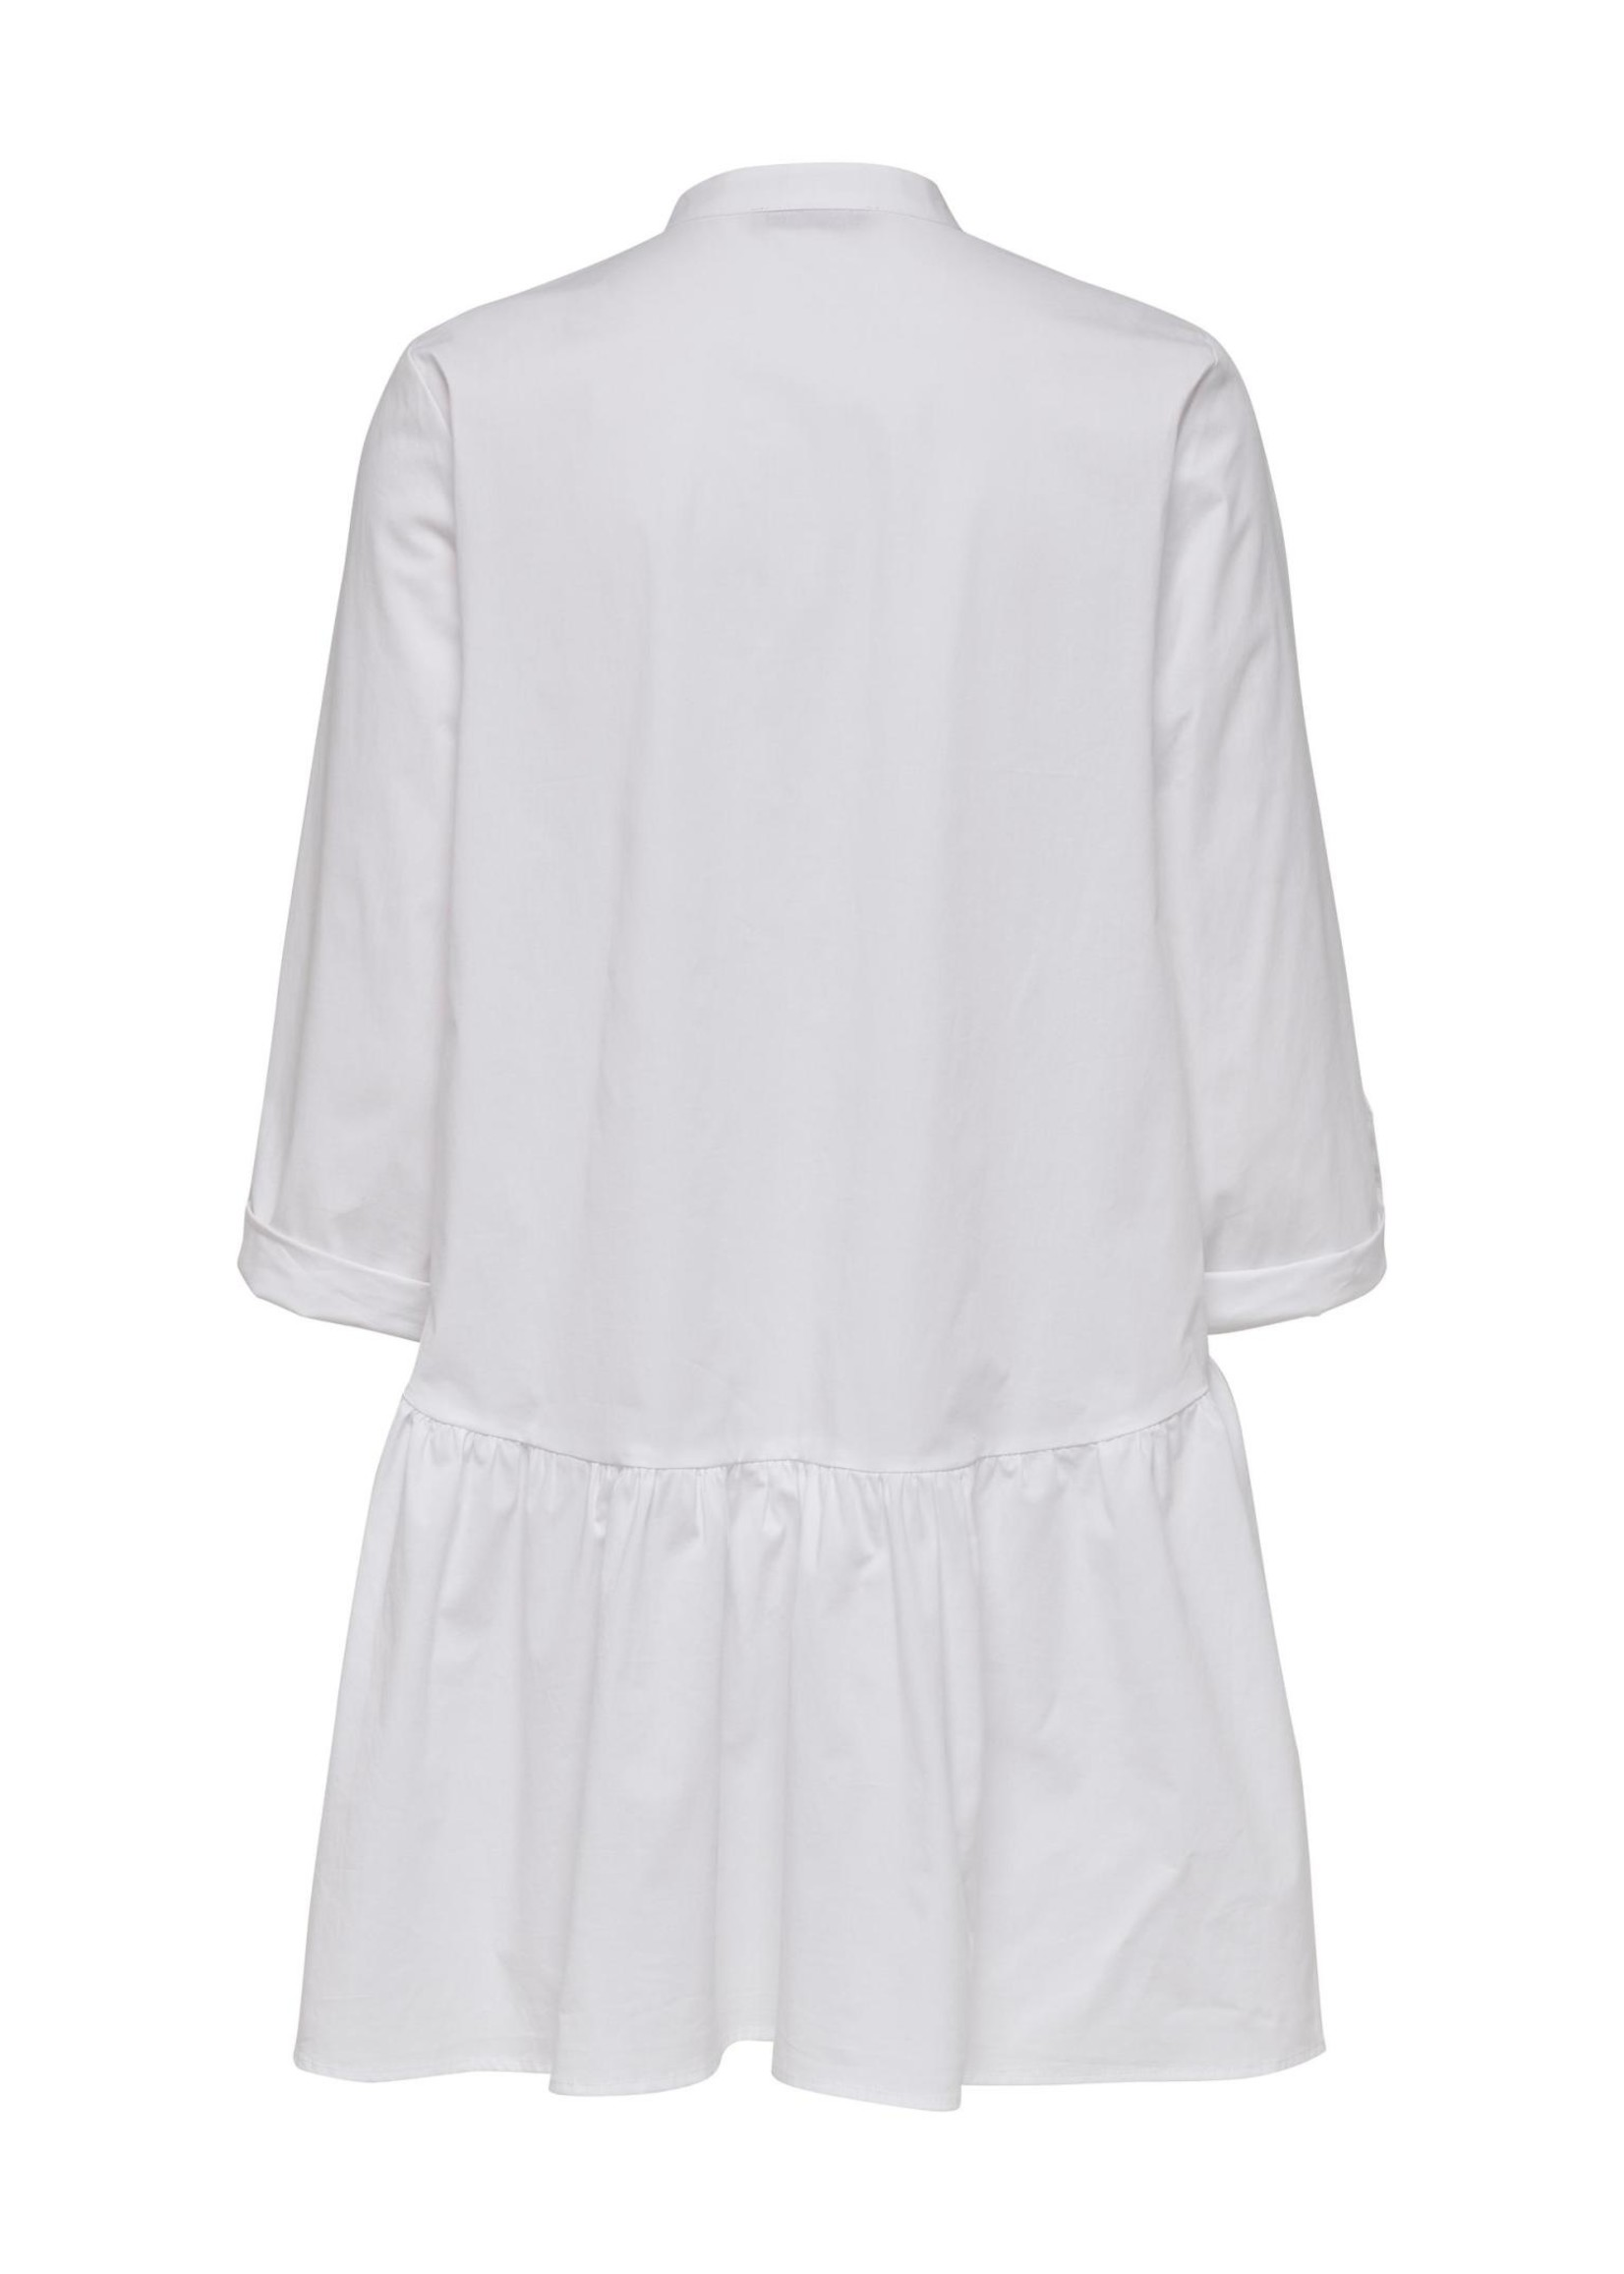 ONLY Ditte life 3/4 dress, wit